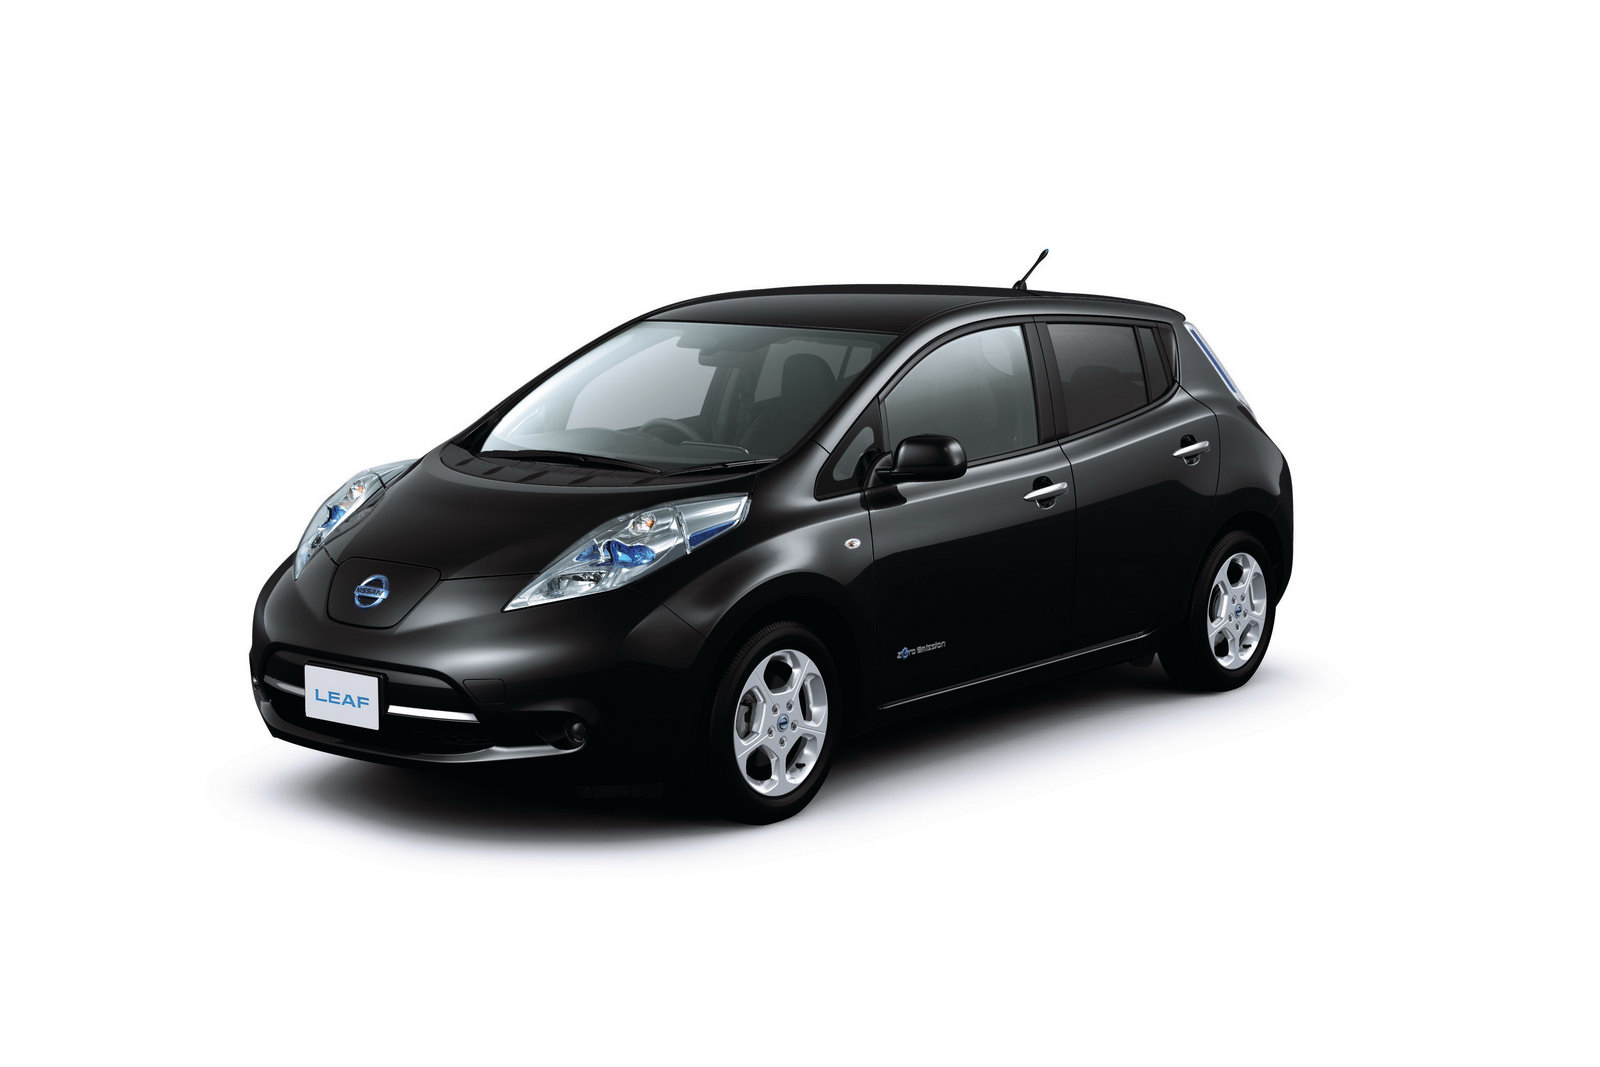 nissan 39 s new leaf models runs 107 miles per charge. Black Bedroom Furniture Sets. Home Design Ideas